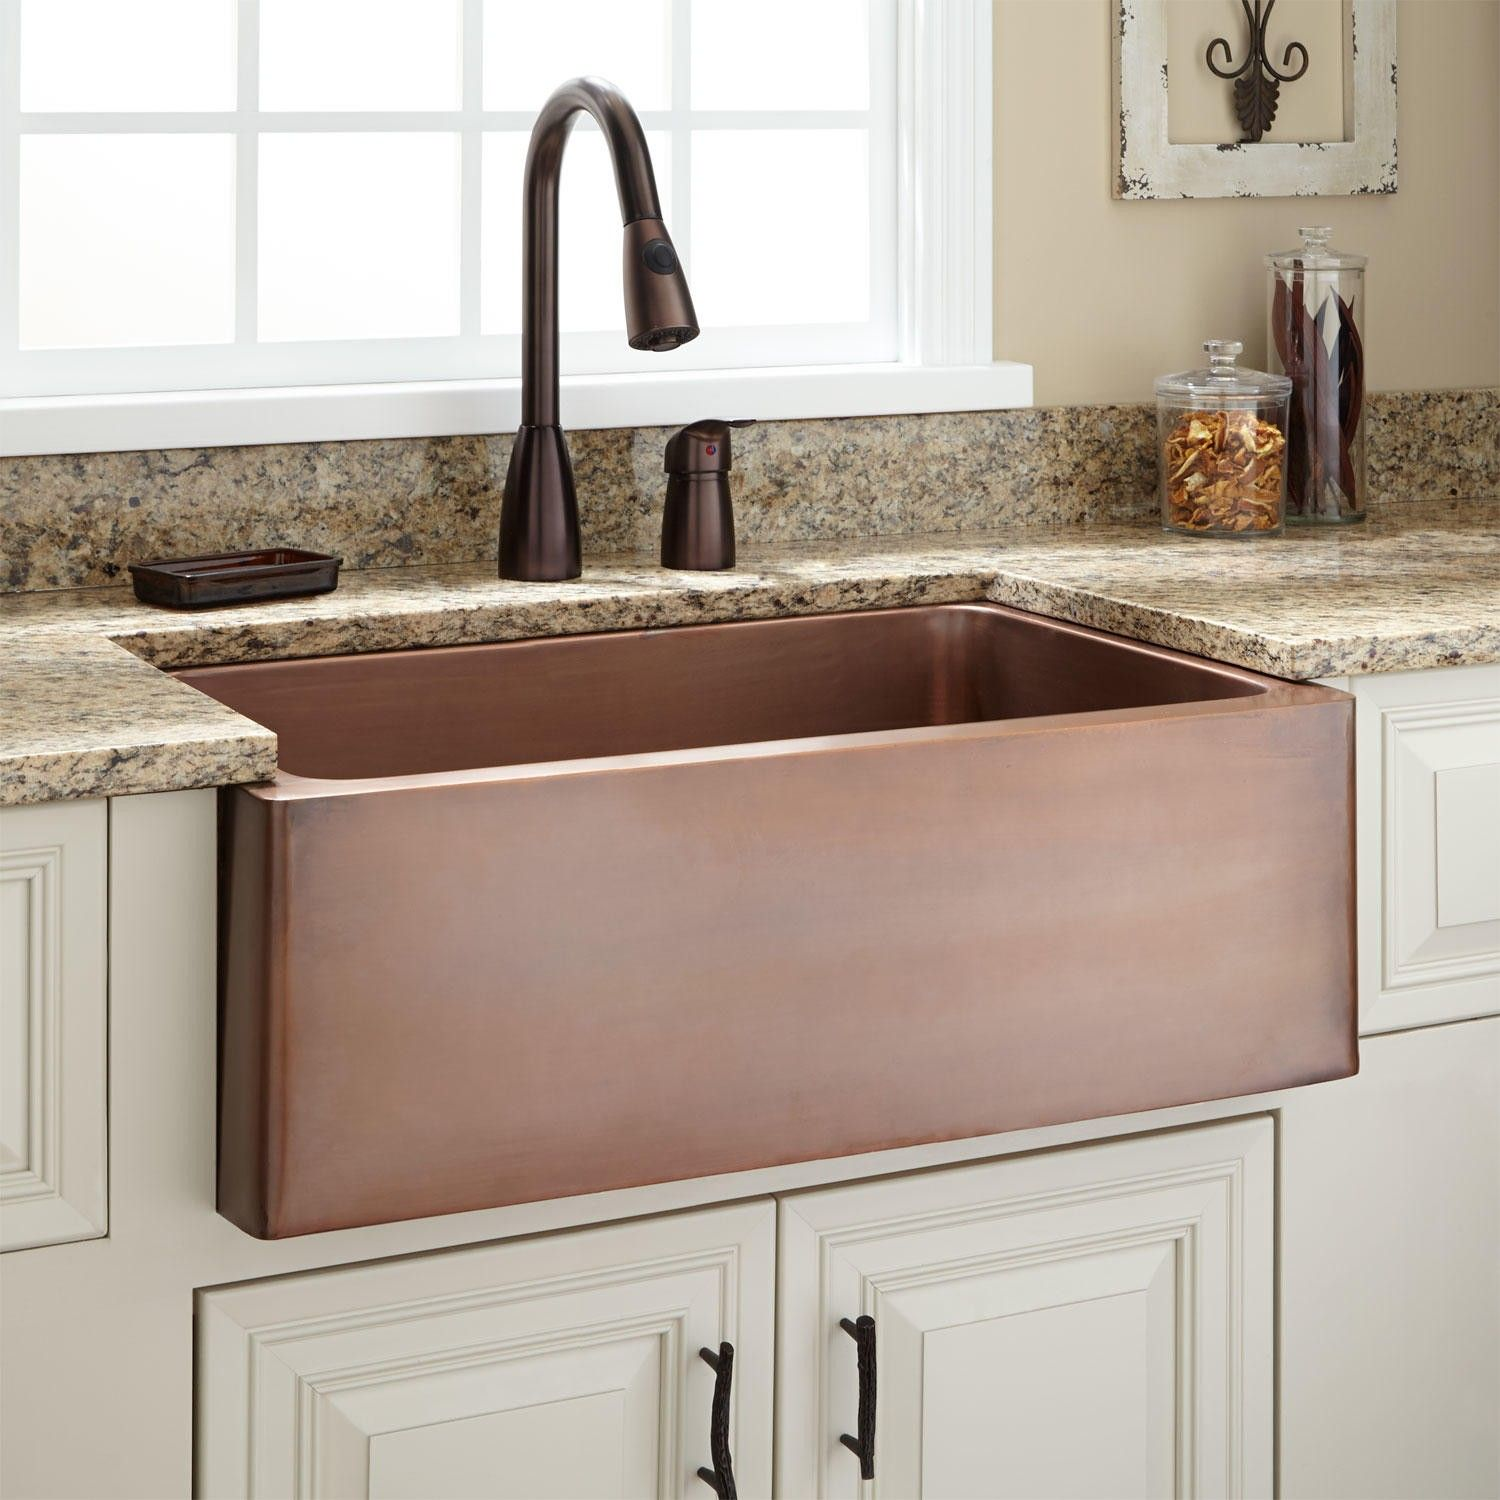 "30"" Kembla Copper Farmhouse Sink For the Farm Pinterest"